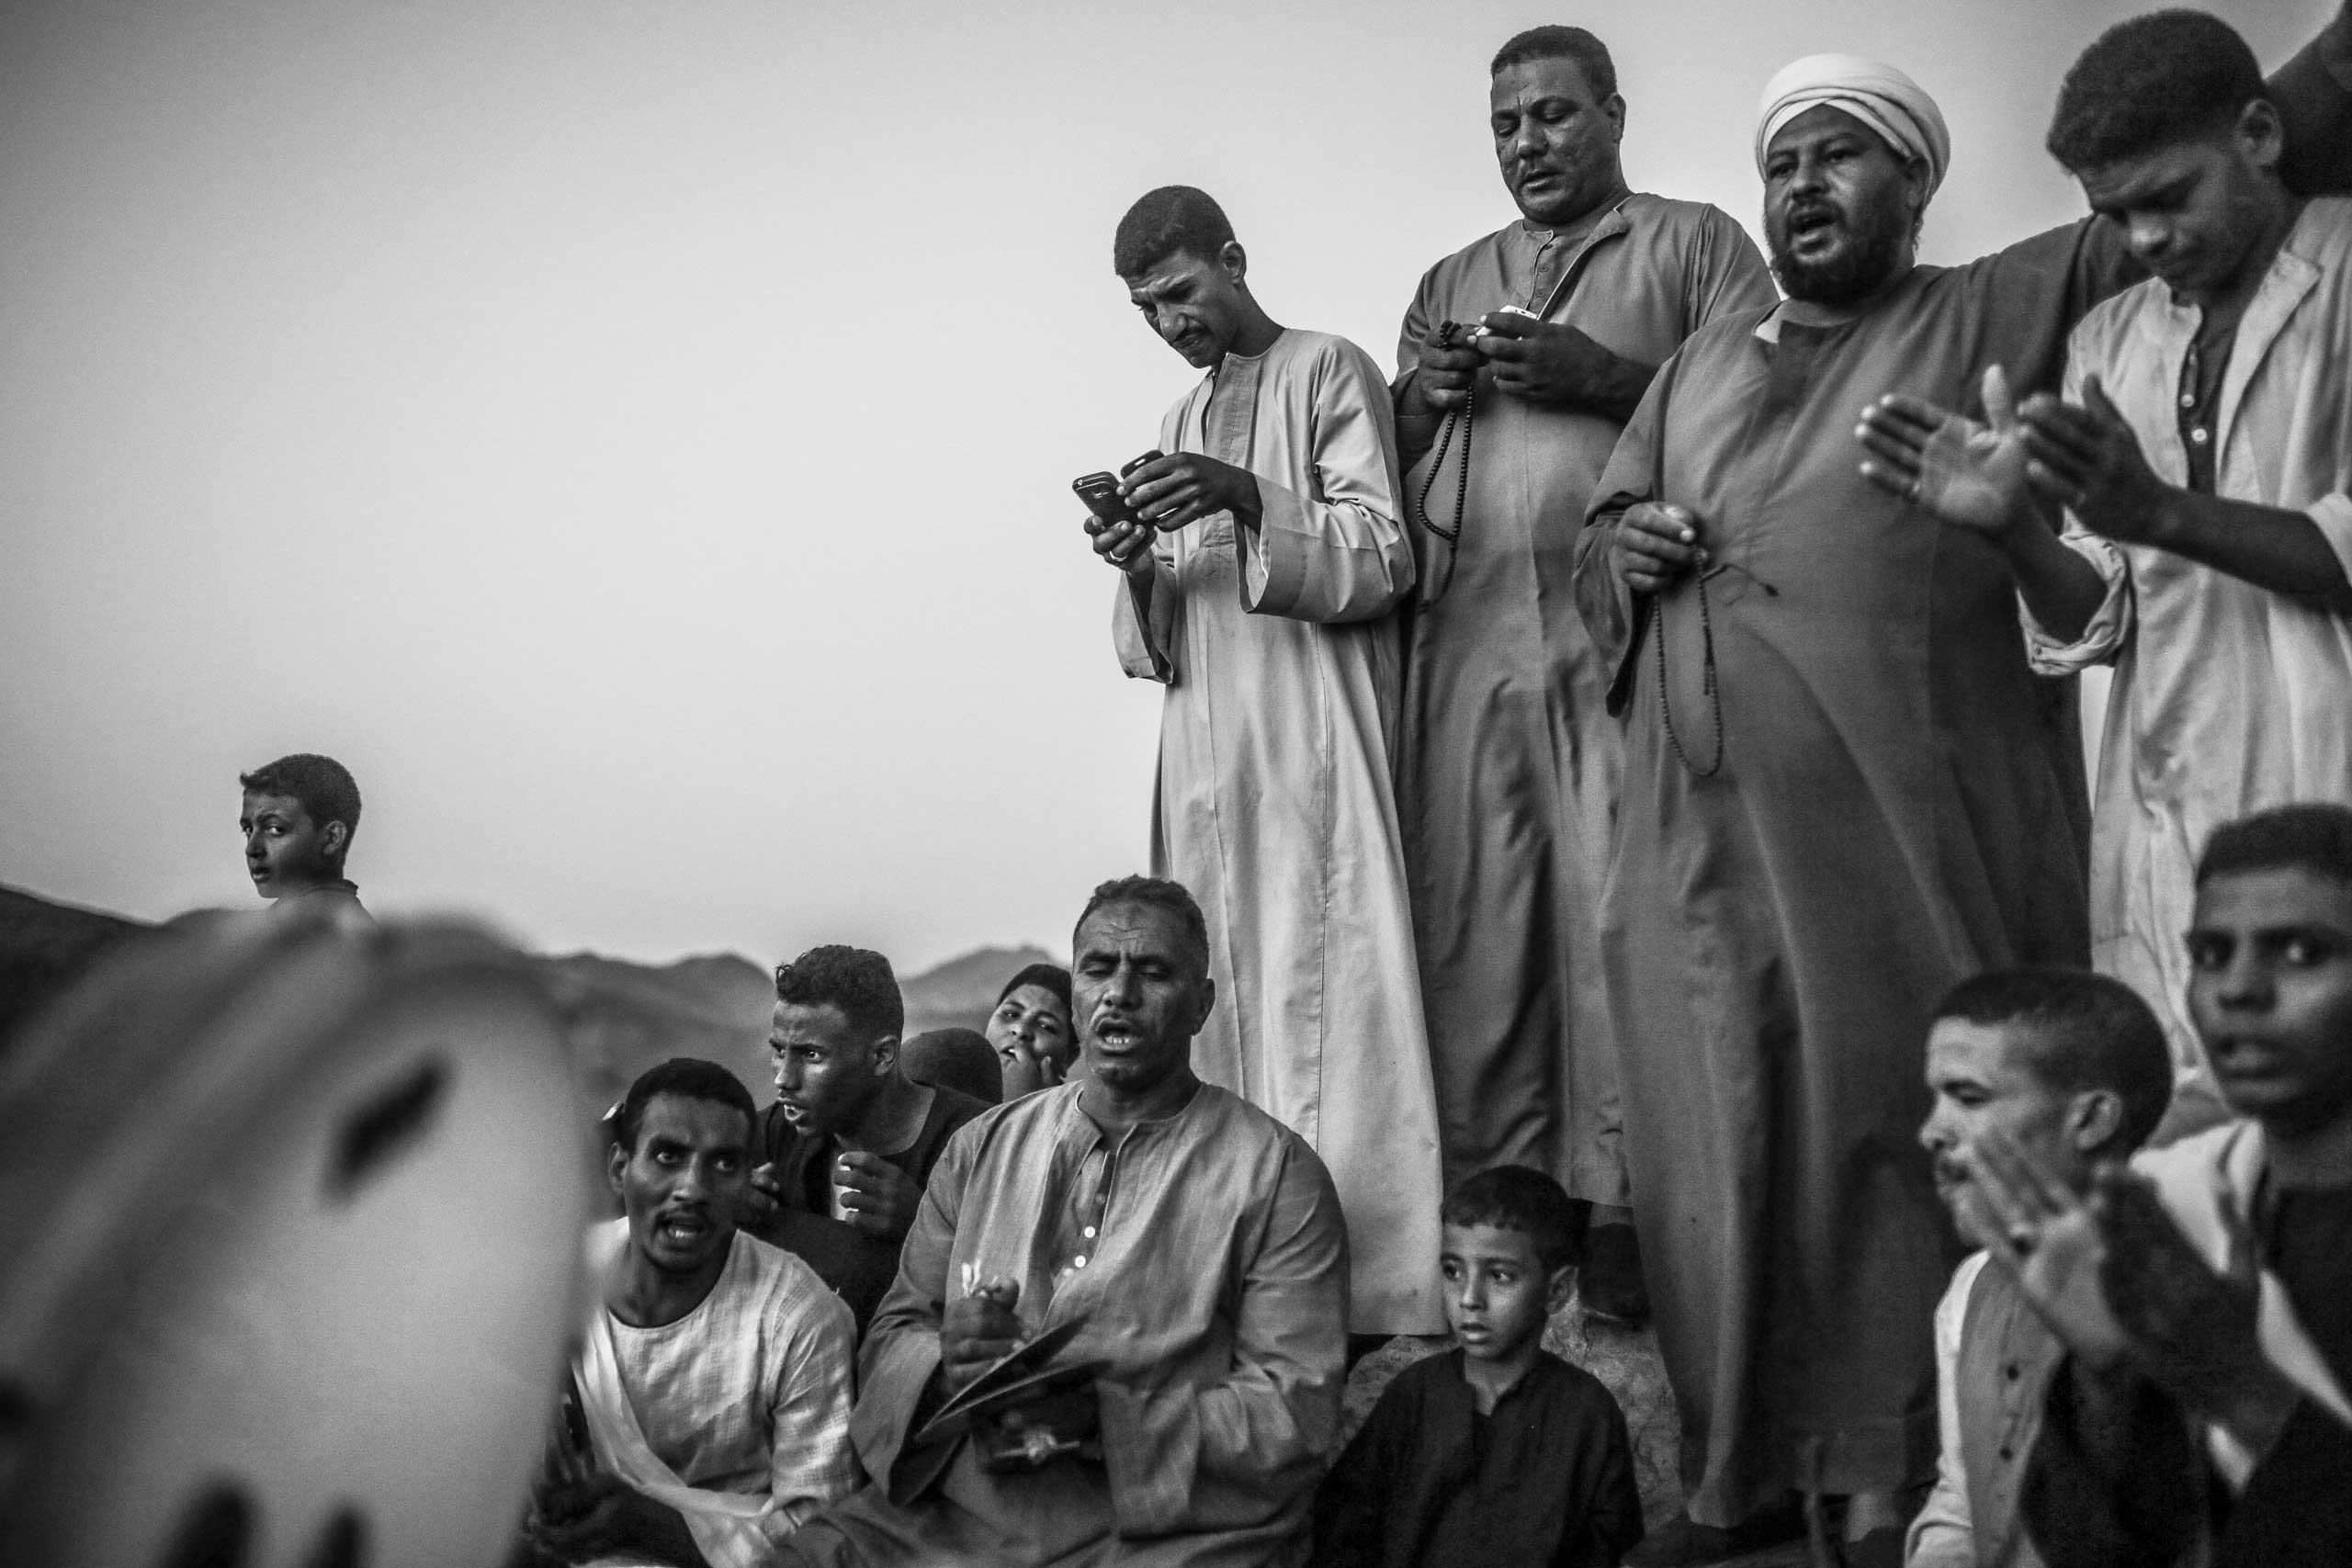 Worshippers sing hymns and recite chants during the week-long celebrations of Abul-Hassan Al-Shazly festival, Humaithara, Red Sea Governorate, Egypt. Sept. 30, 2014.